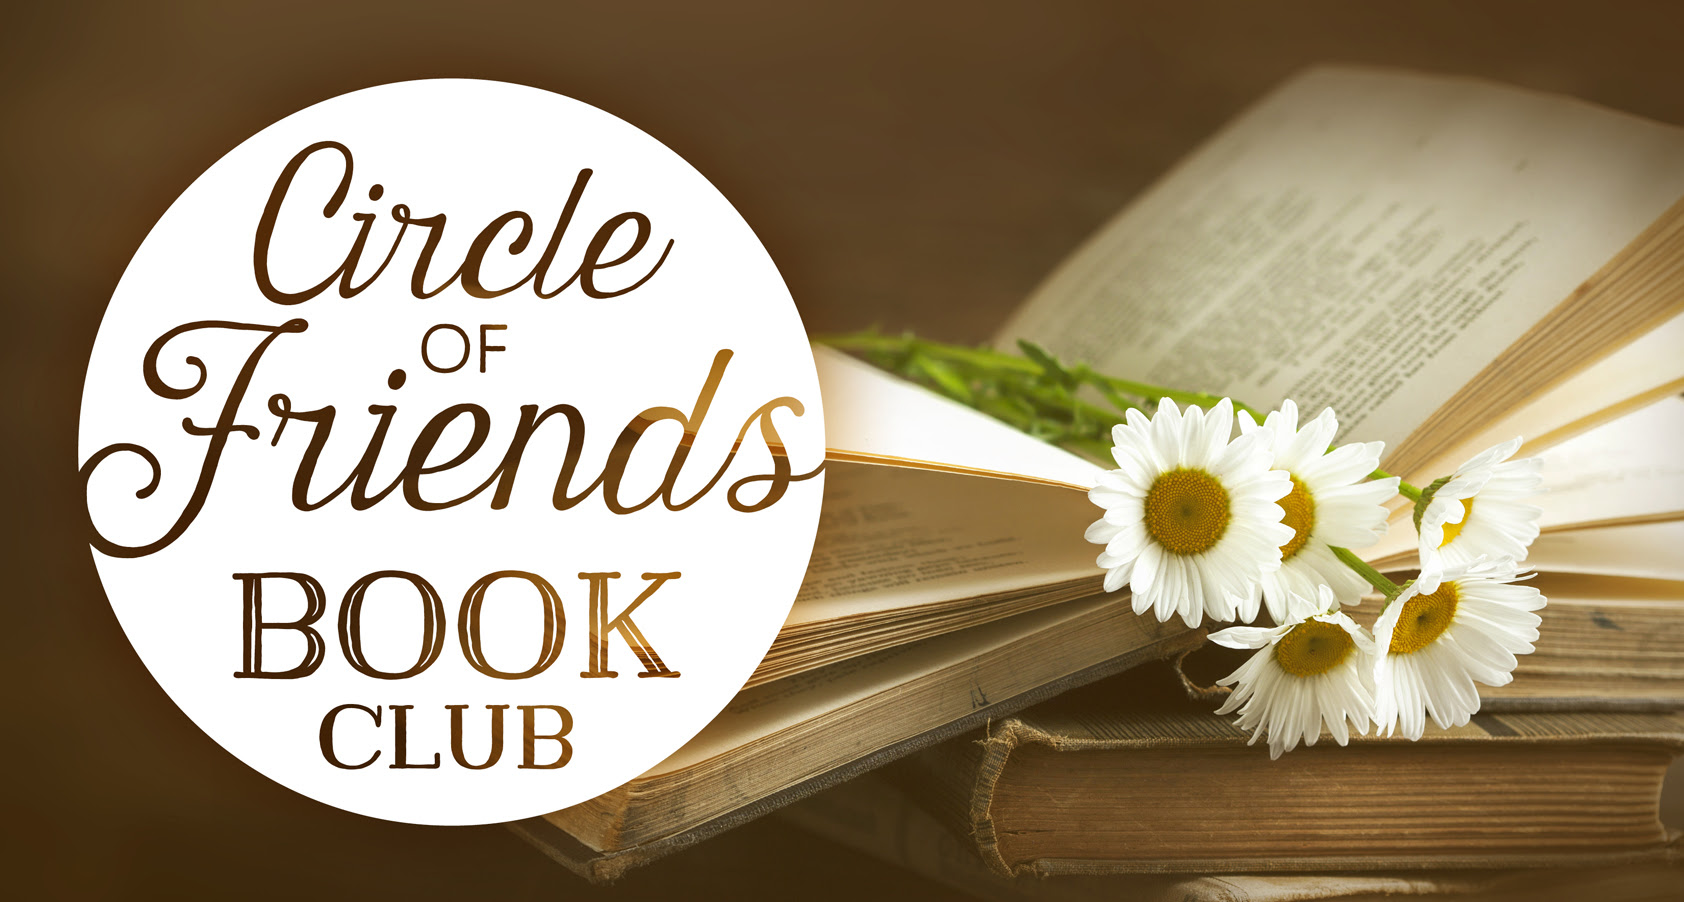 Circle Of Friends Book Club Baháí Center Of Washtenaw County